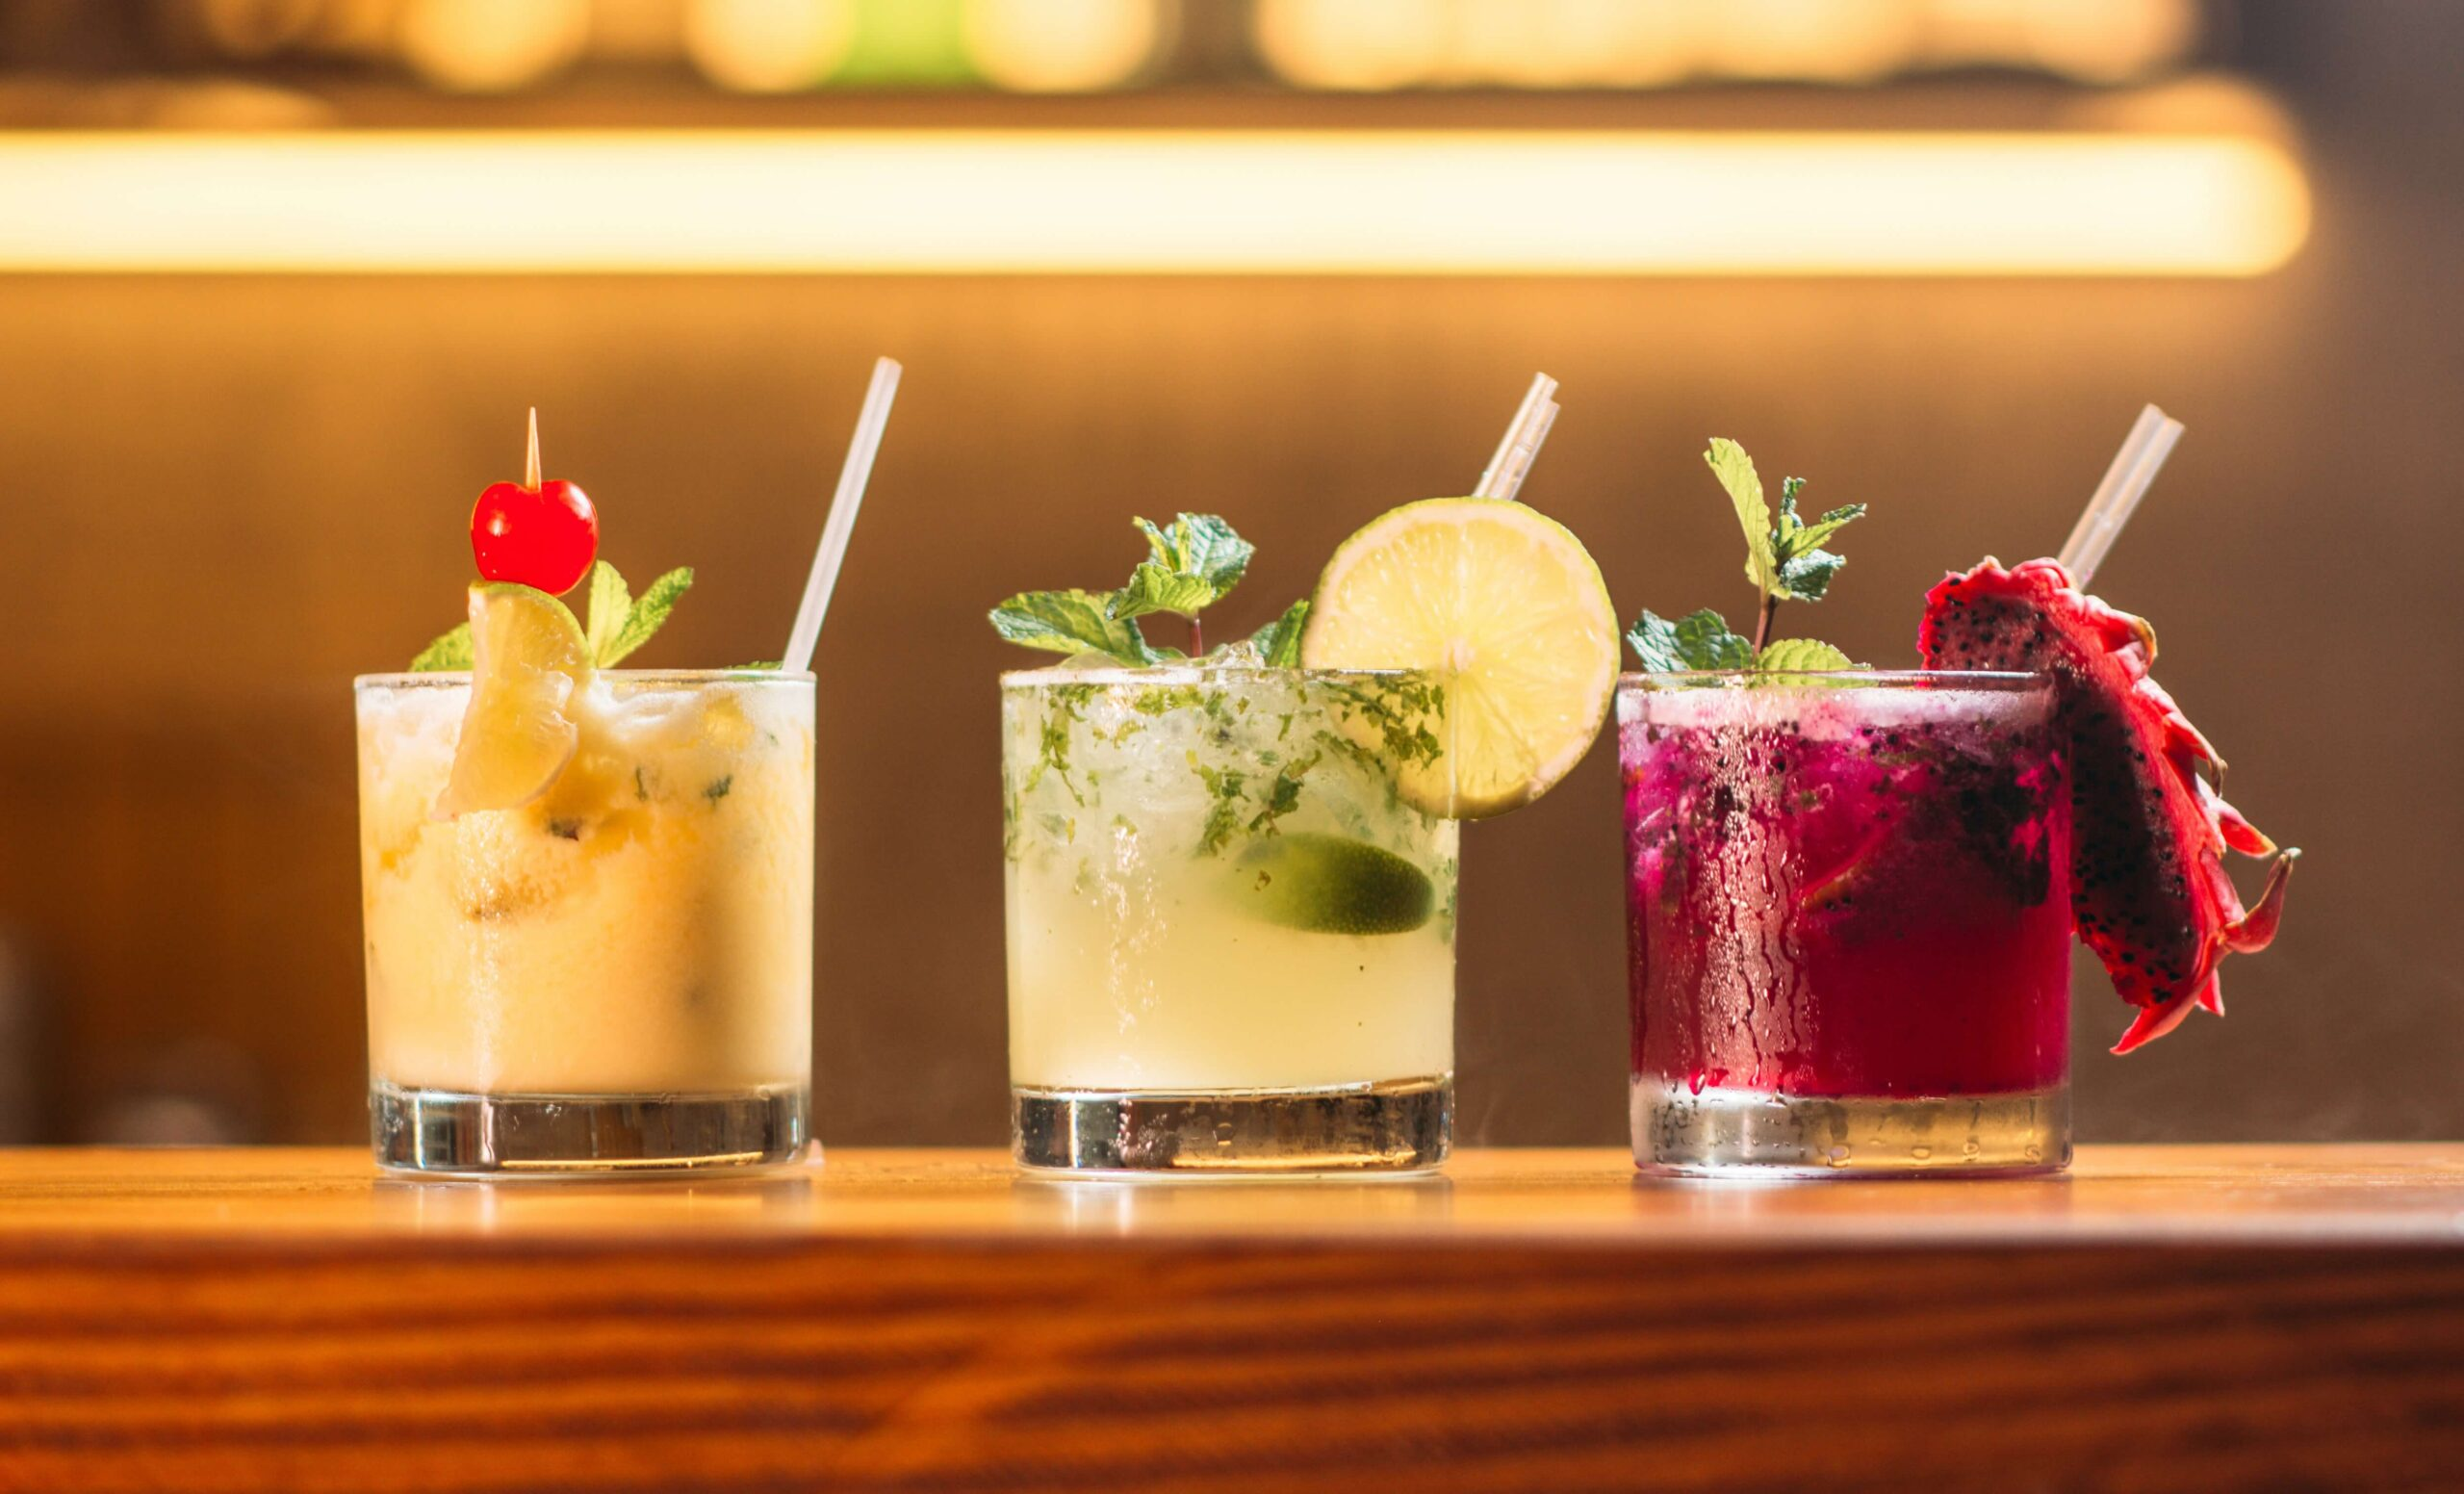 Cool and refreshing summer drinks ideas